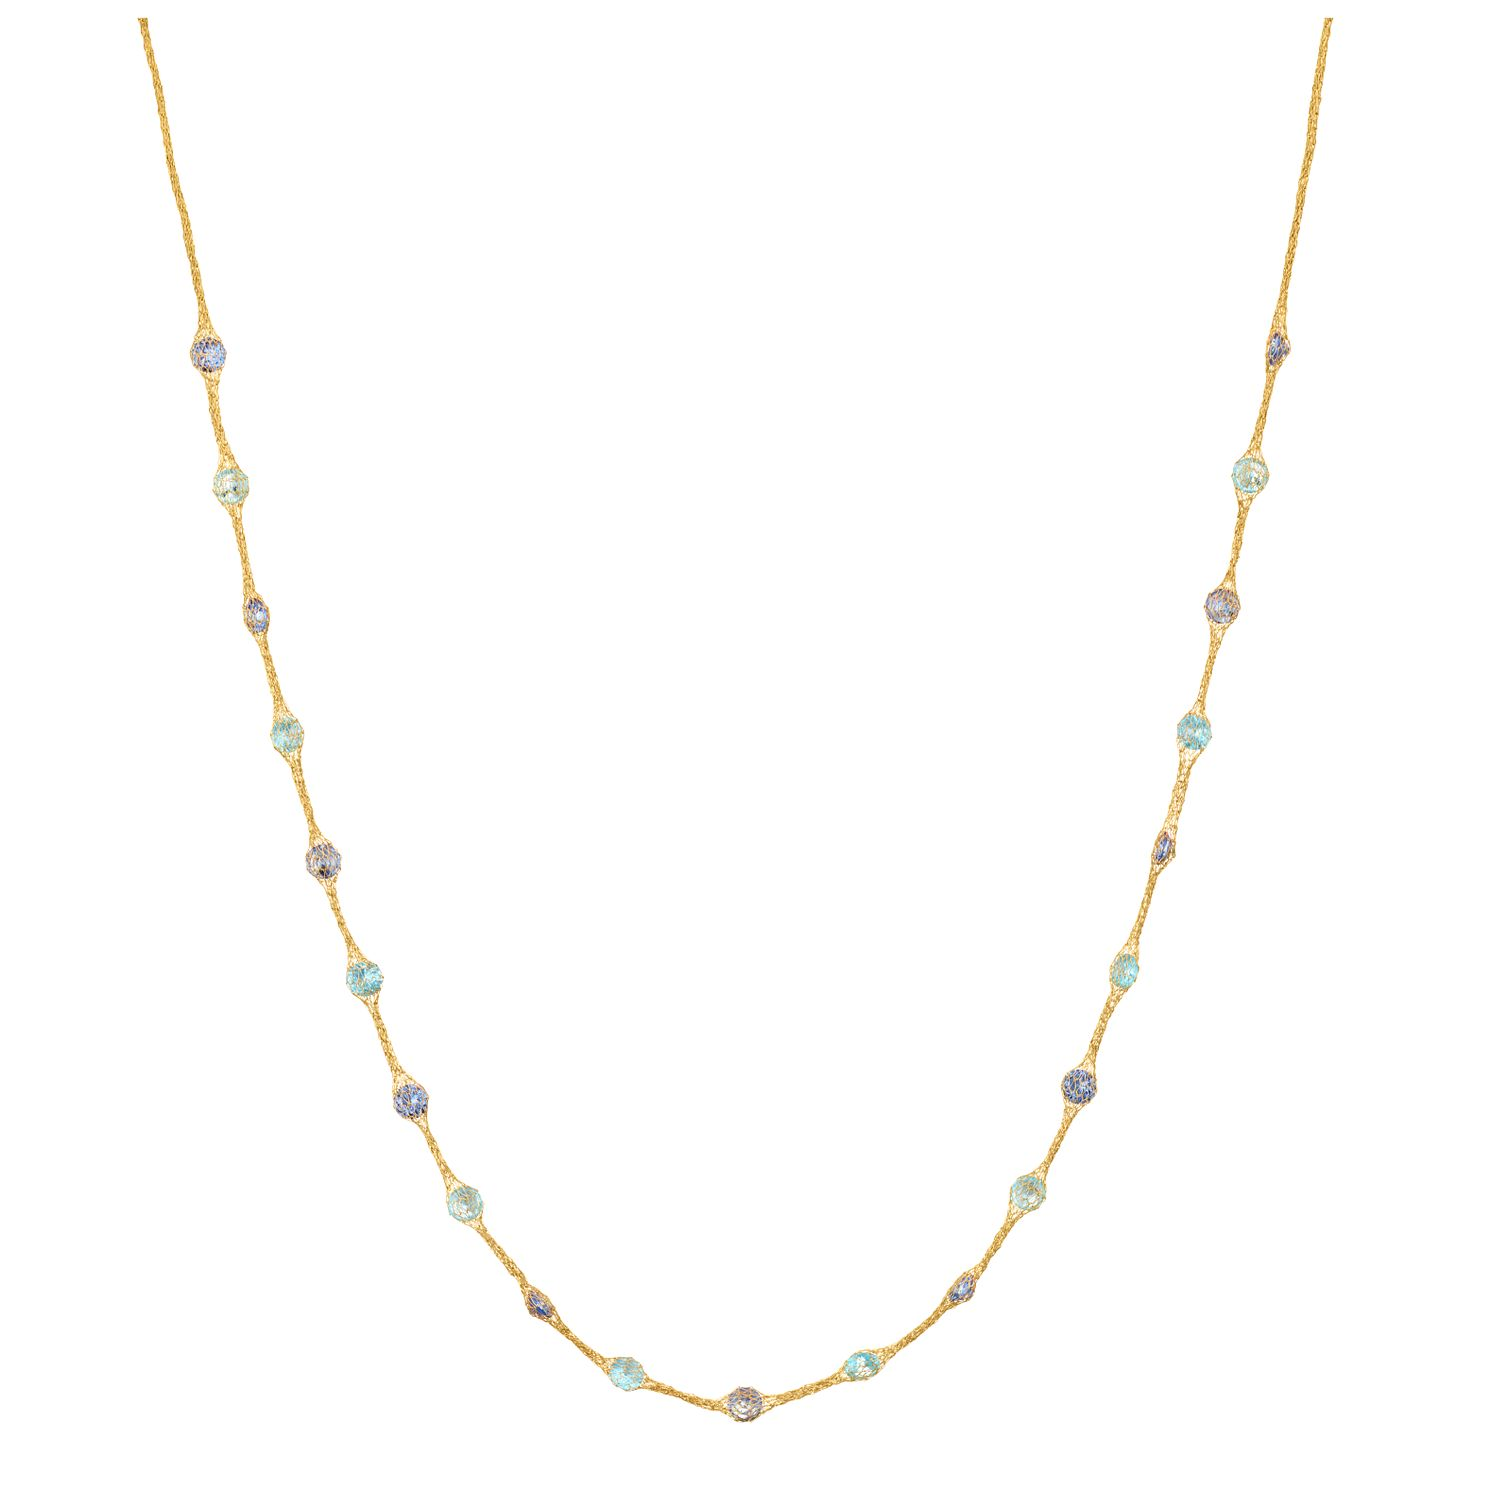 9ct Yellow Gold & Blue Cubic Zirconia Mesh Necklet - Product number 9403353